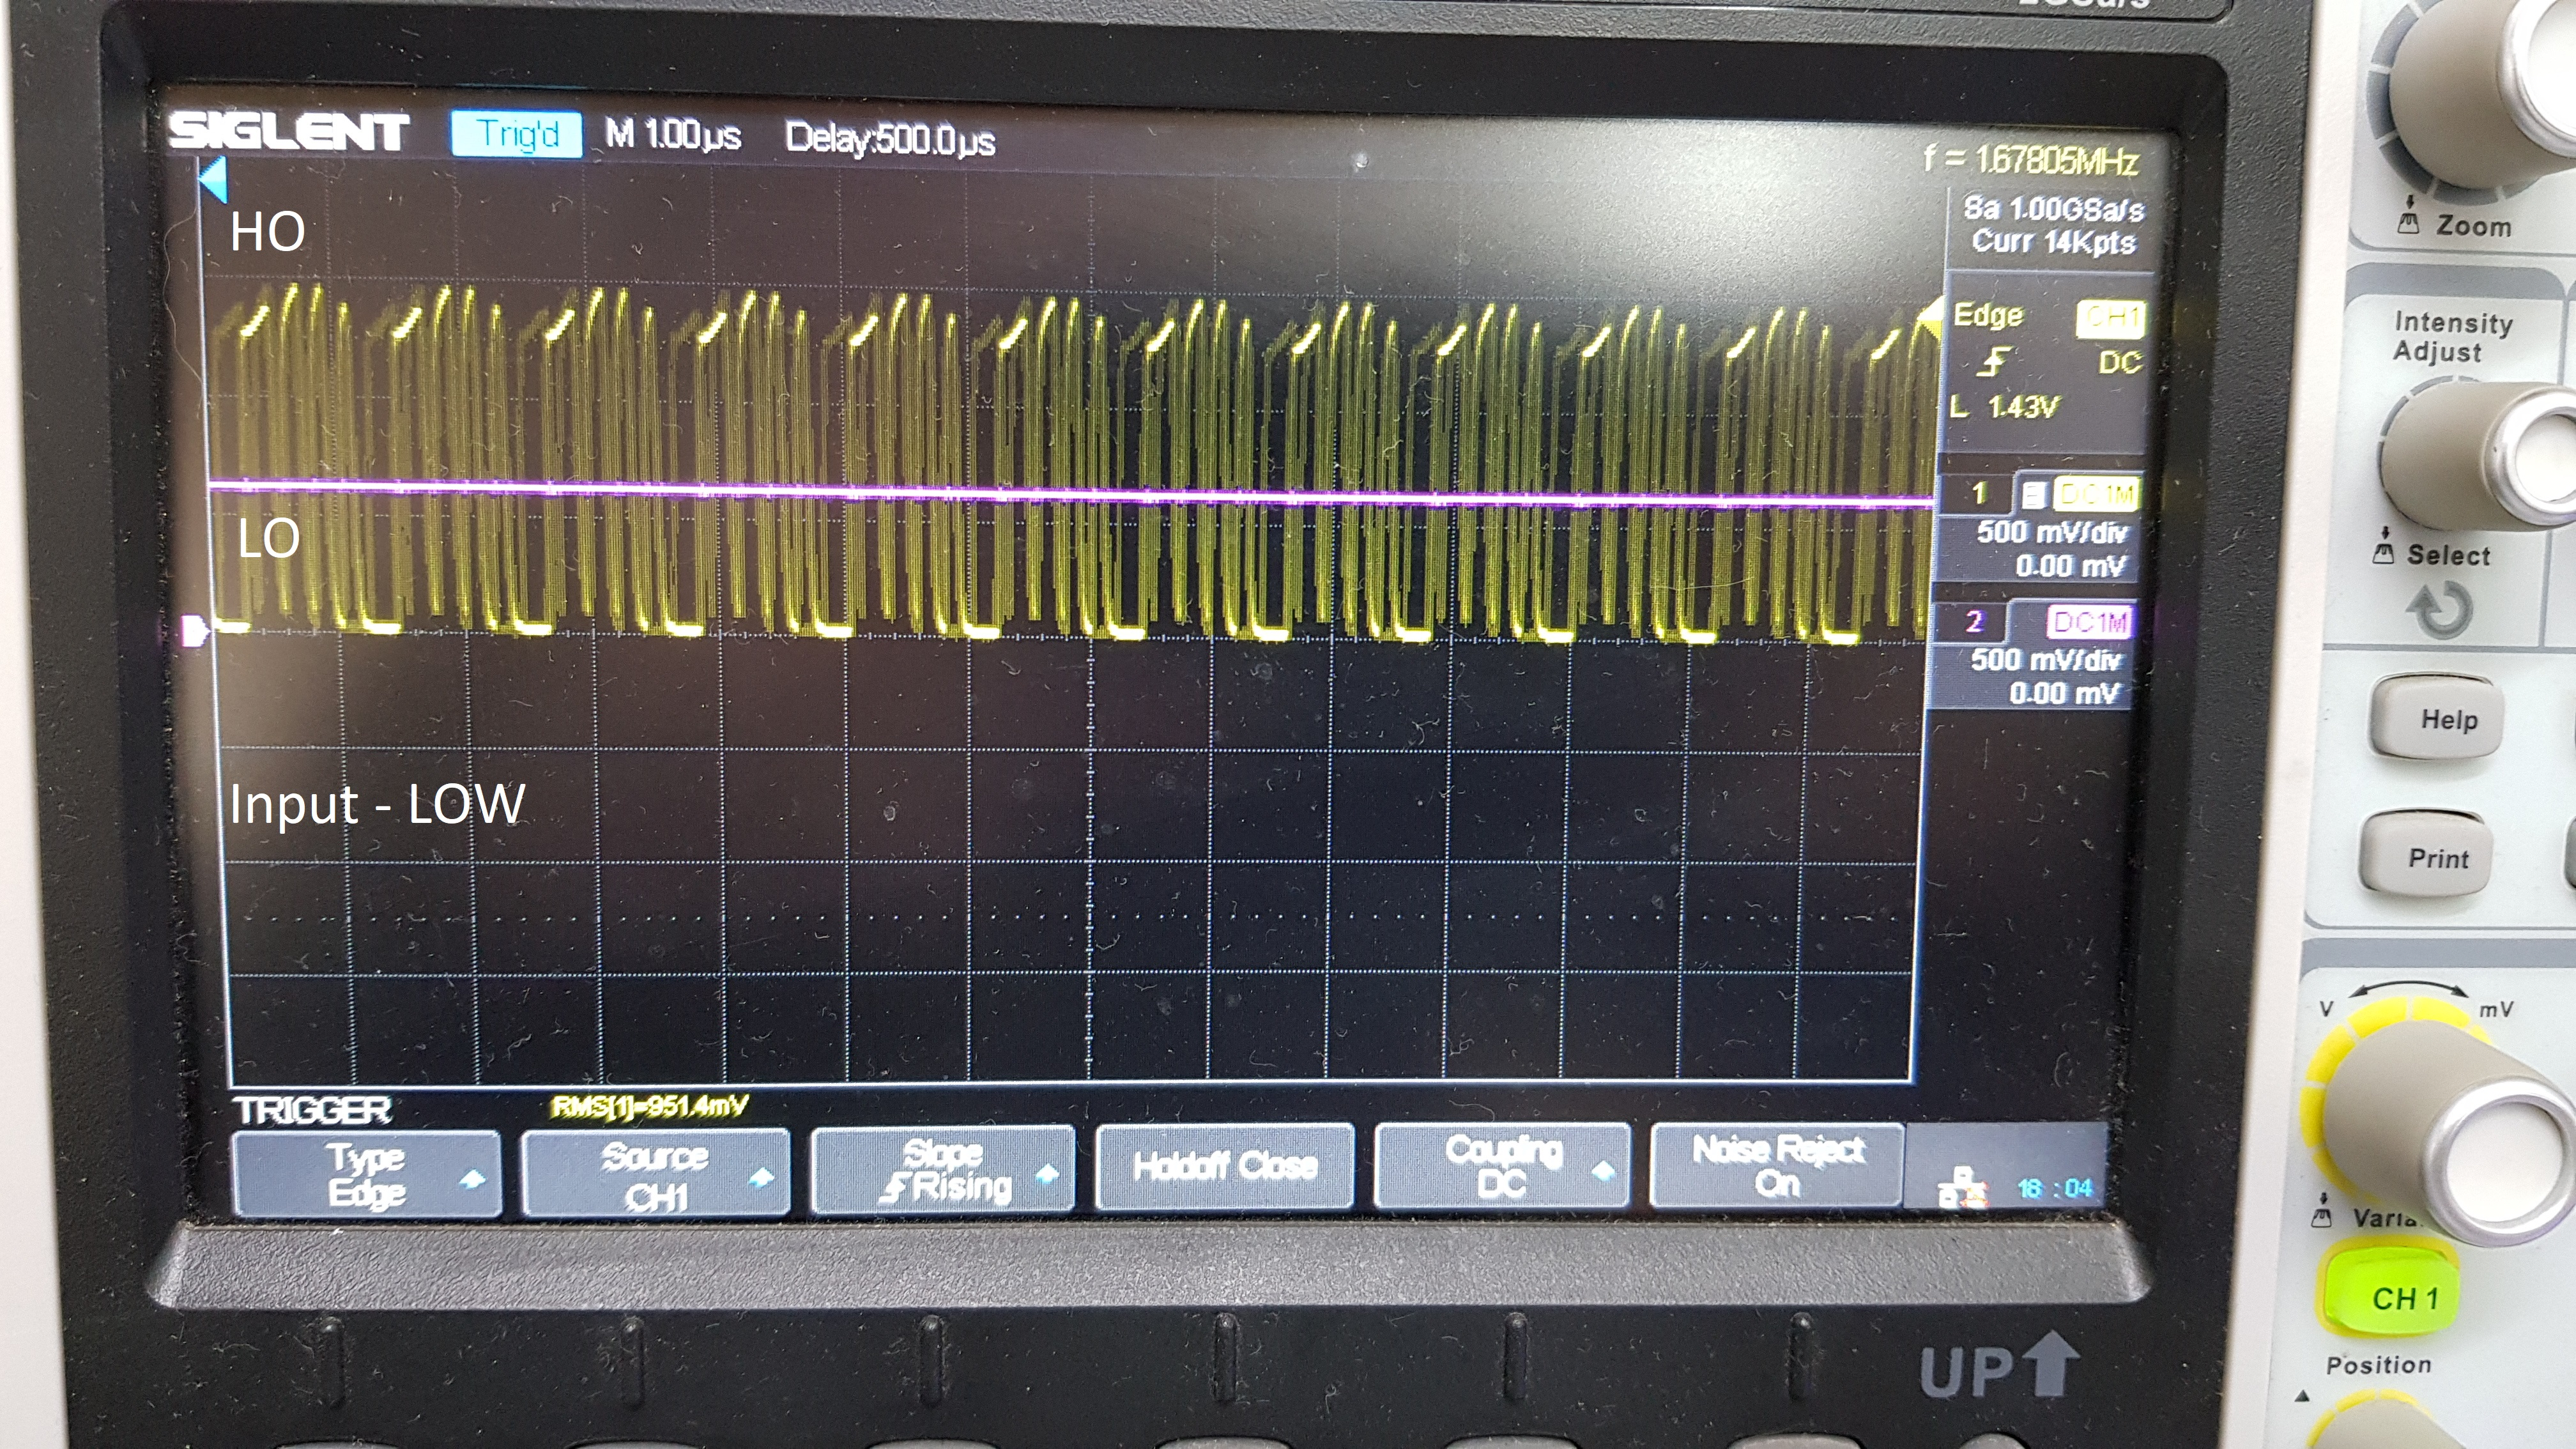 Lm5104 To Work As A Switch Not With Pwm Power Management Forum Supply Non Isolated Dc Ti E2e Vin After This Oscilation Stopped I Got